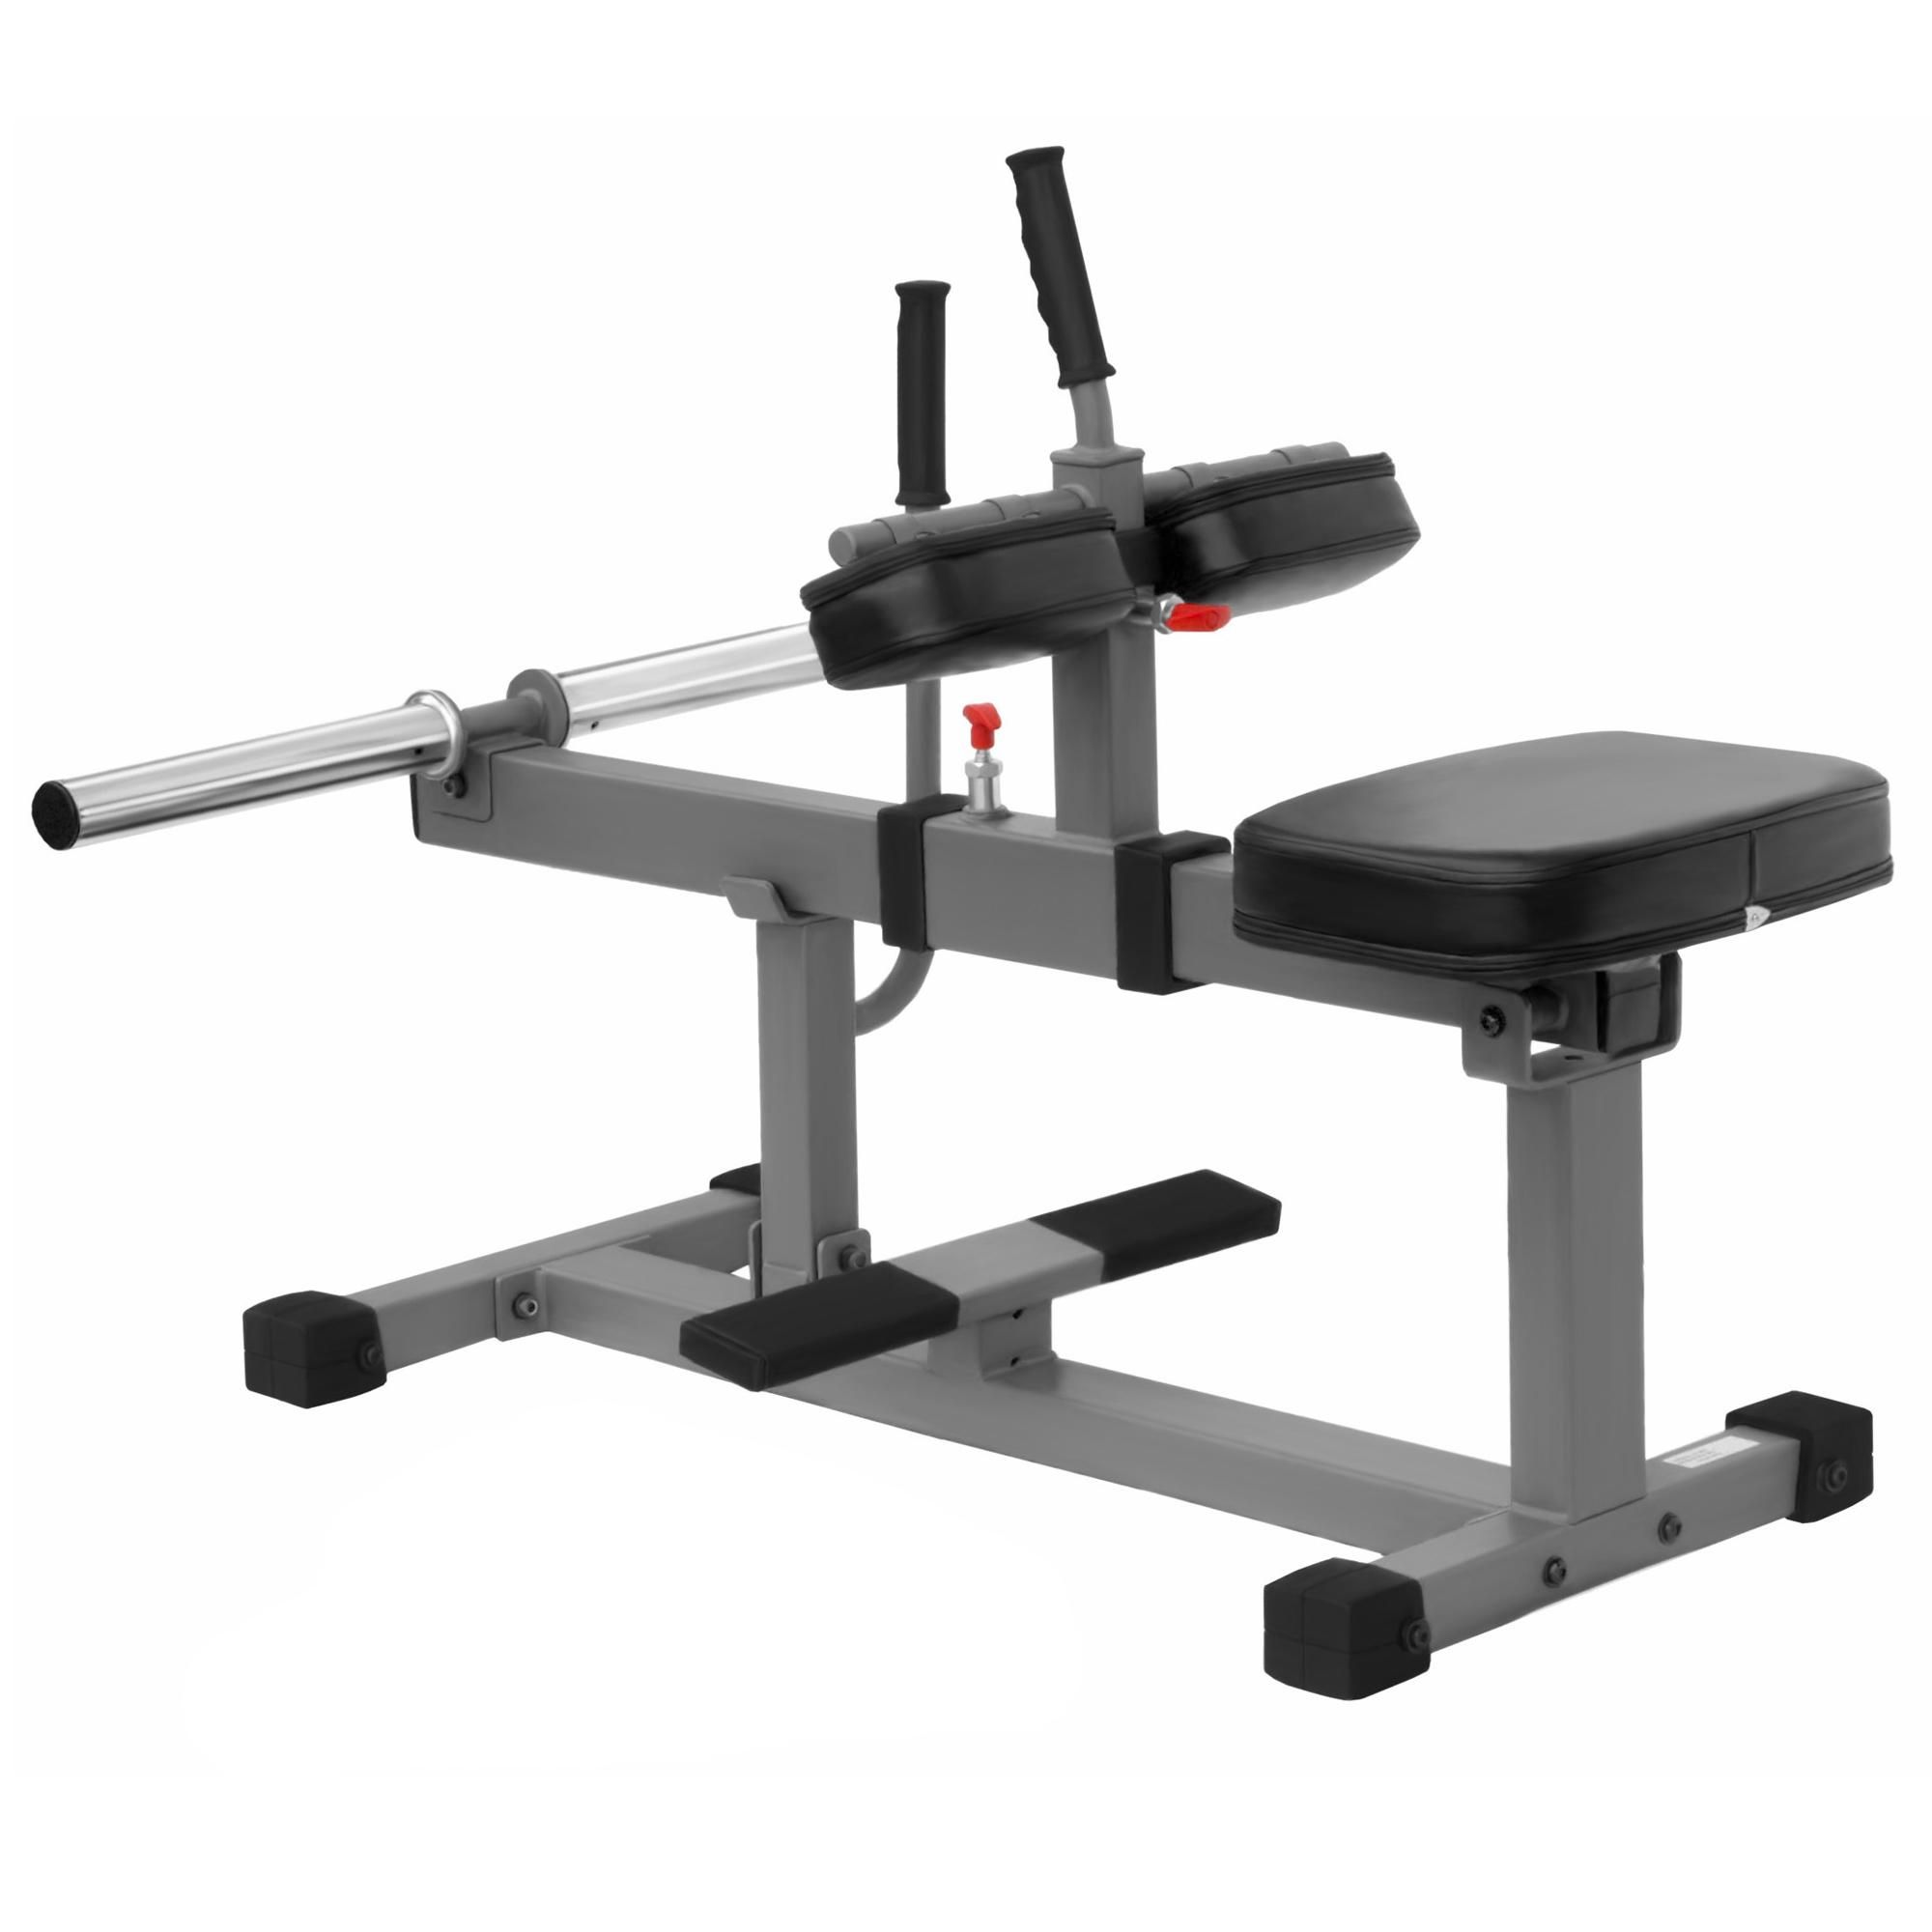 XMark Seated Calf Raise Machine XM-7613 Fitness Solutions Group has selling xmark seated calf raise machine xm-7613 product with good q… | Silla ergonómica, Sillas